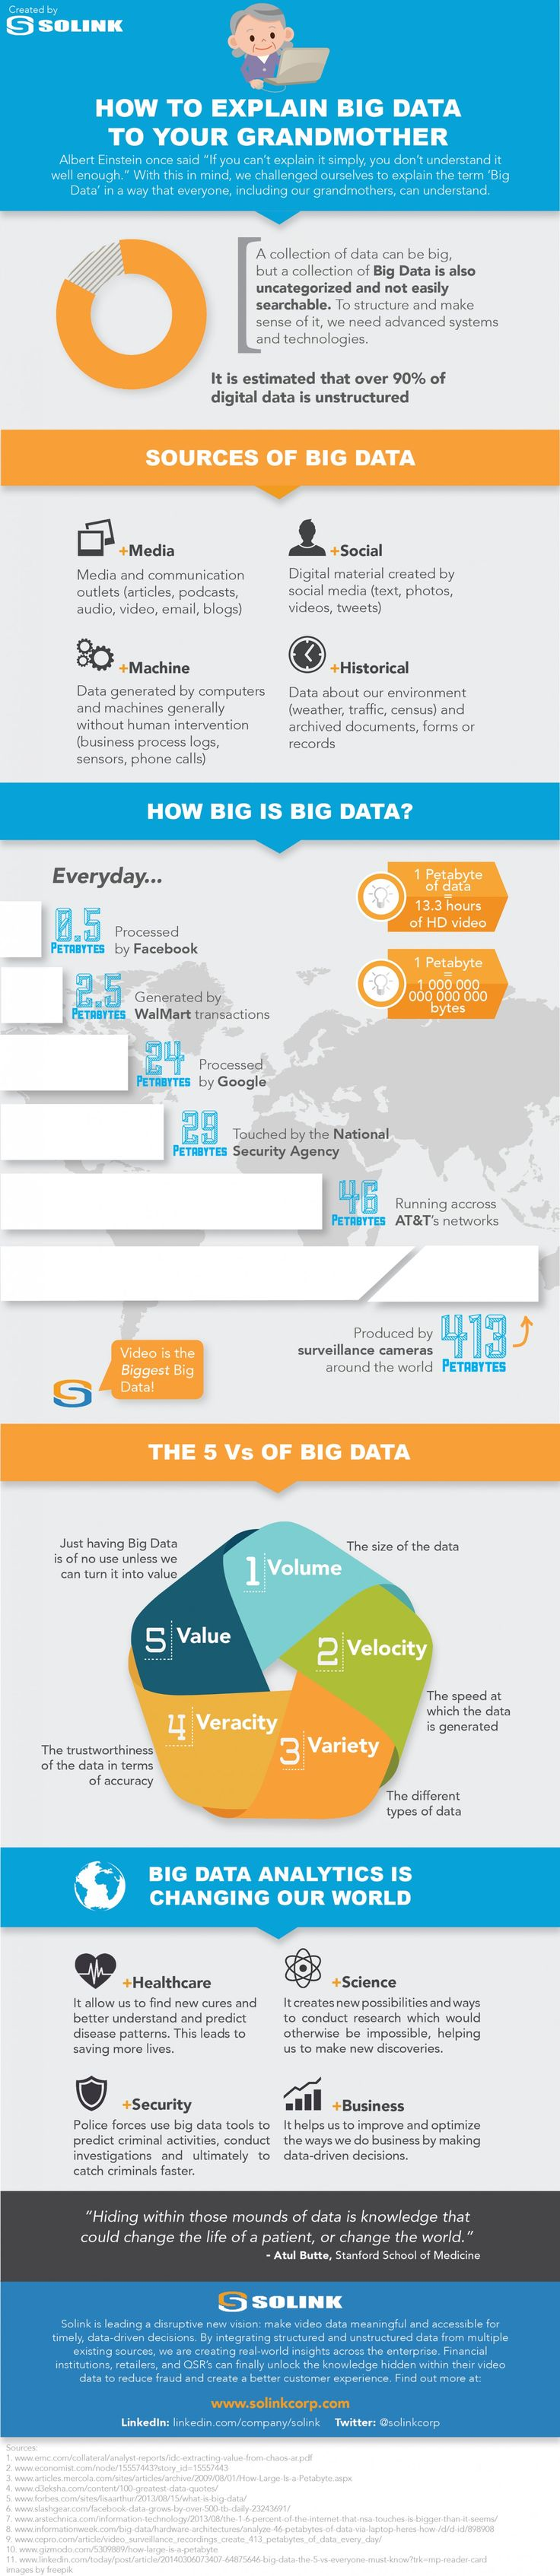 How to Explain Big Data to Your Grandmother Infographic